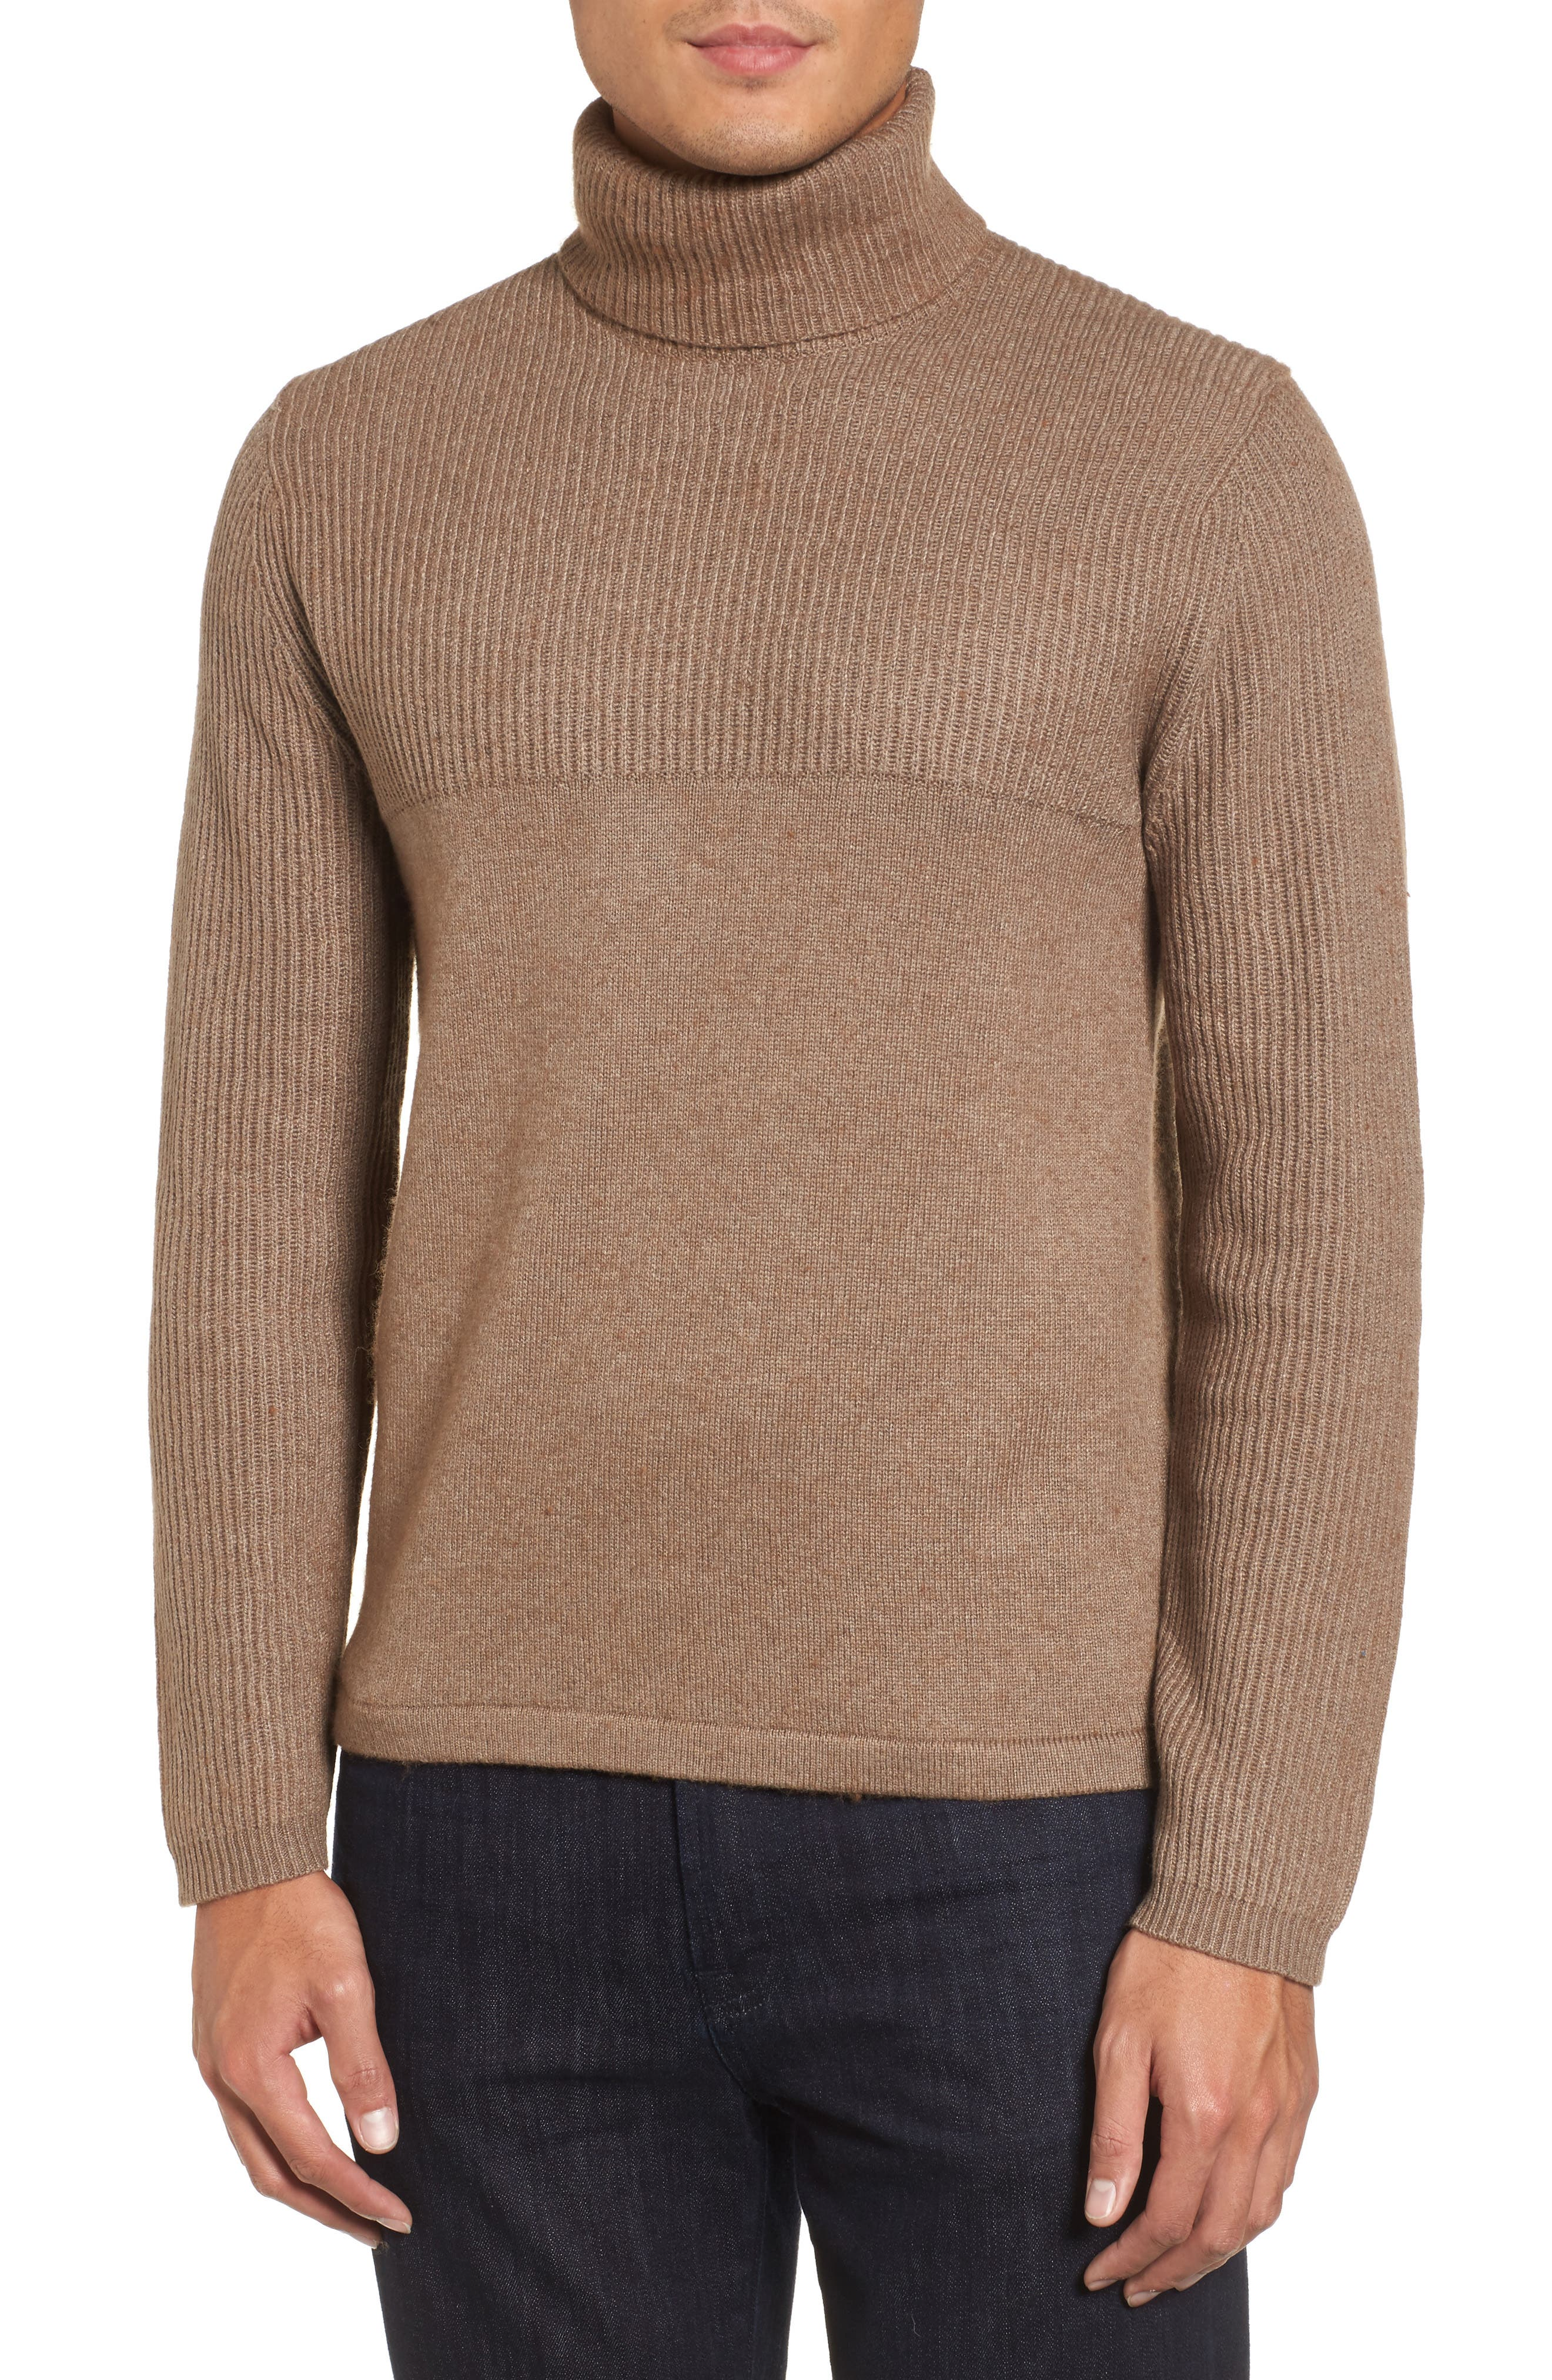 Alternate Image 1 Selected - Zachary Prell Mix Stitch Turtleneck Sweater